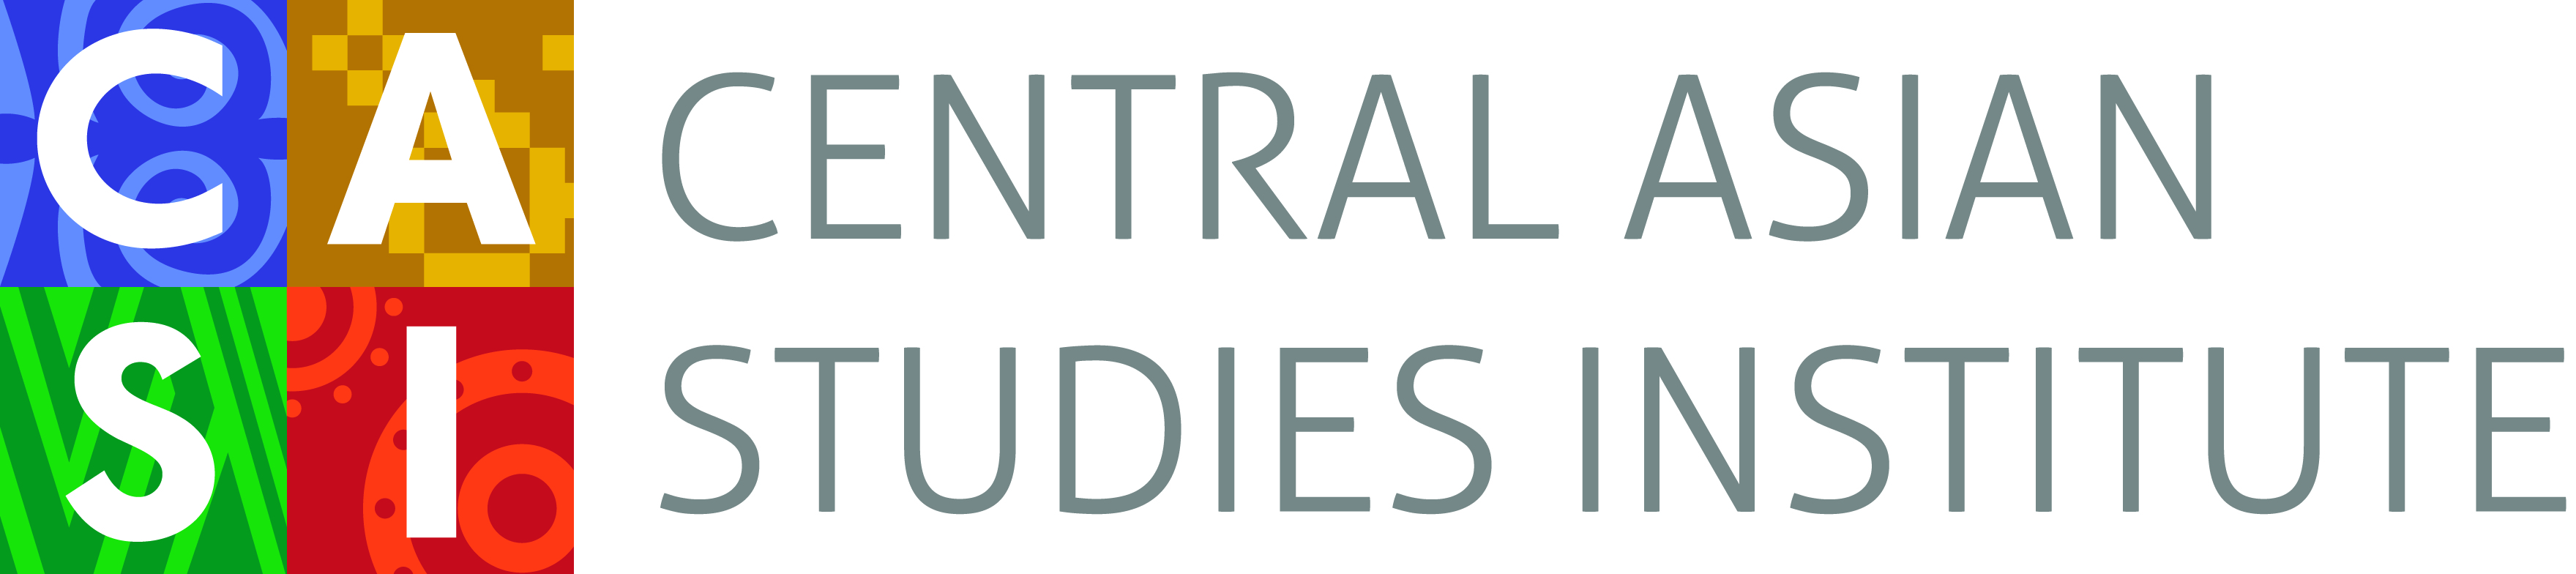 Central Asian Studies Institute